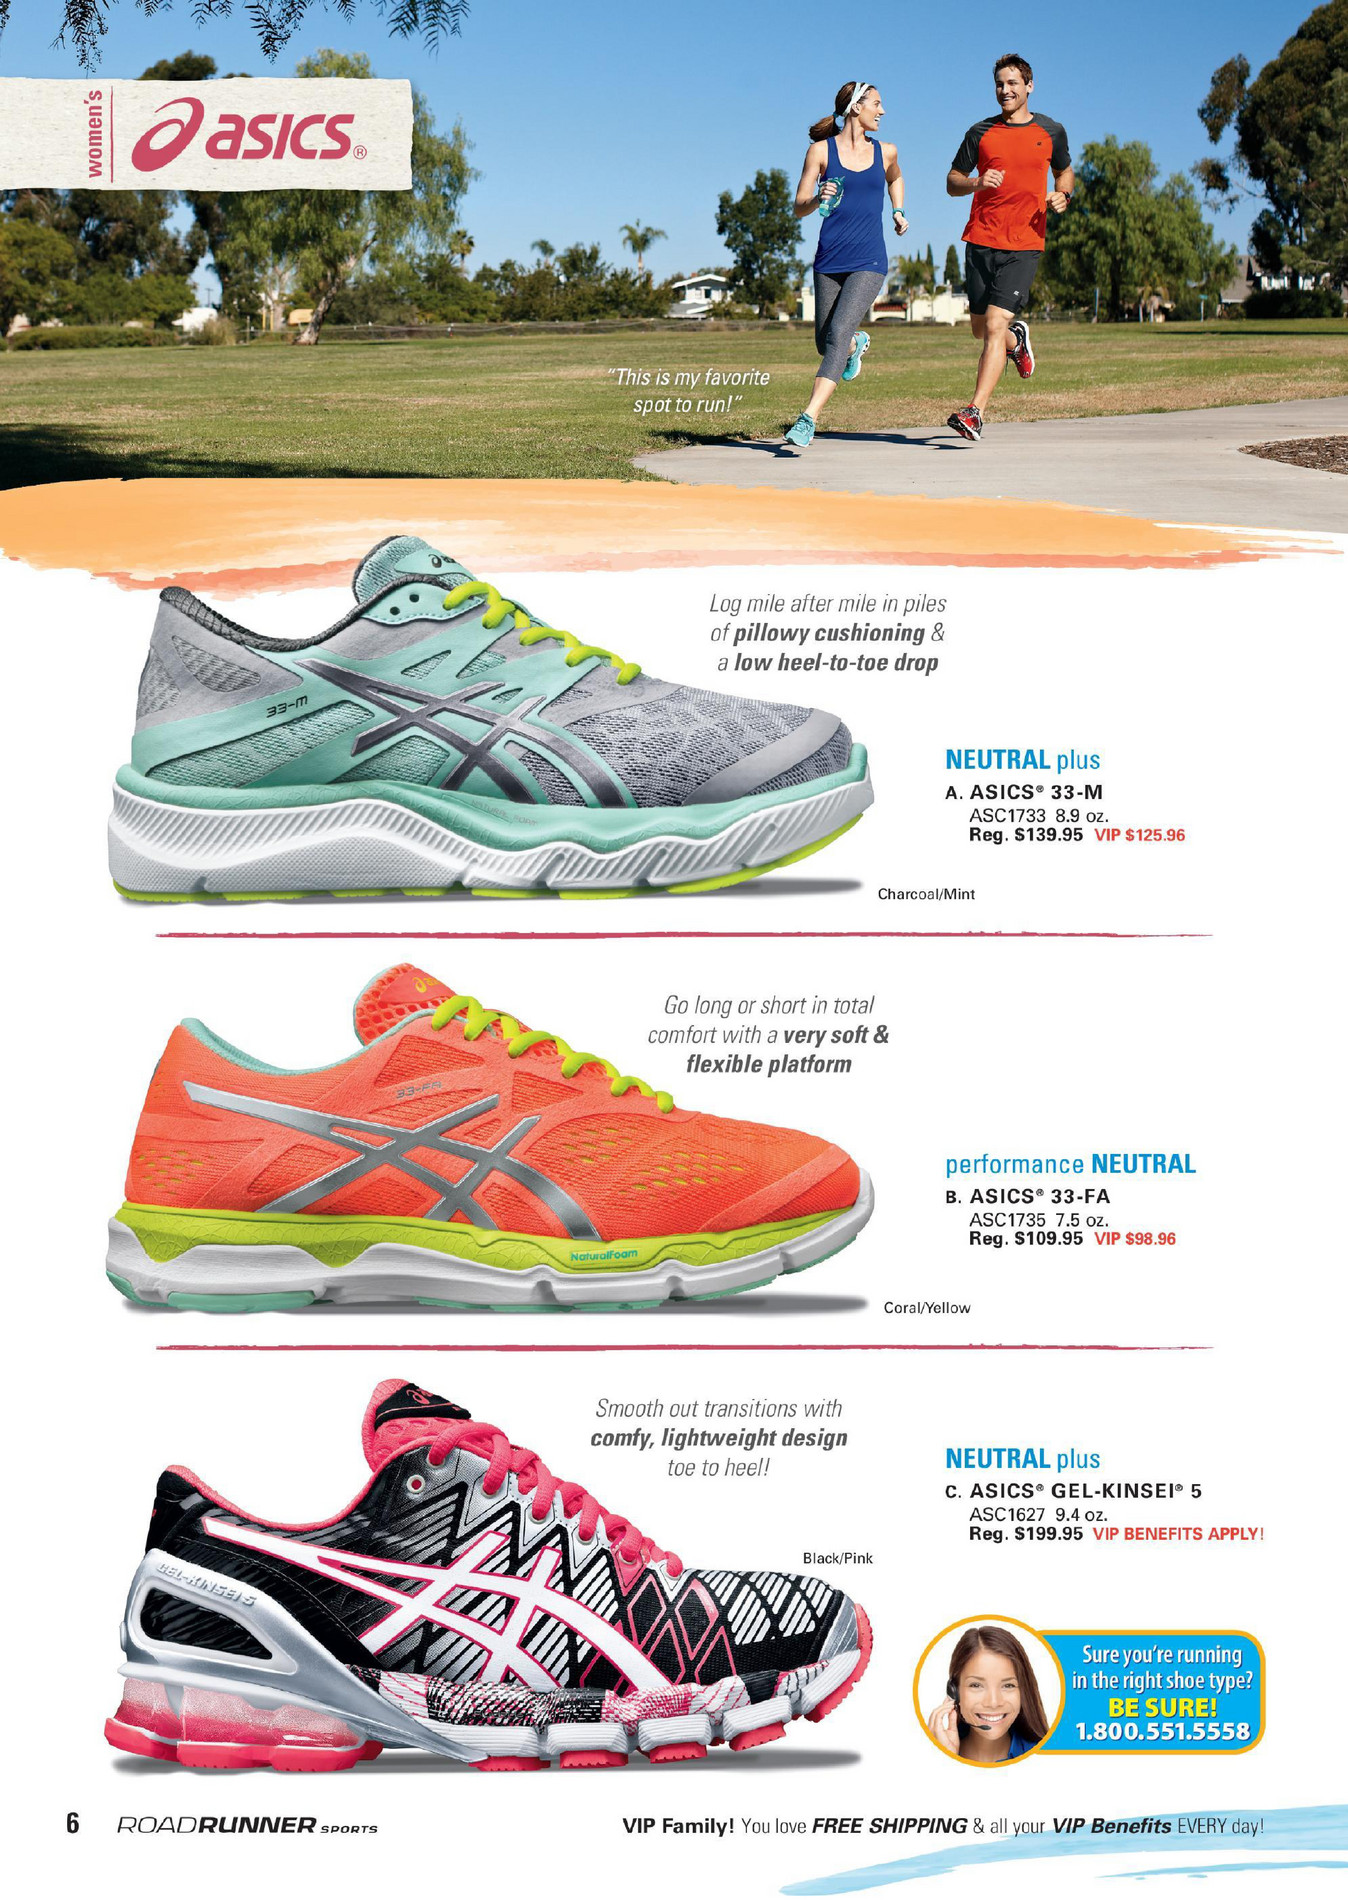 Road Runner Sports Full Swing Spring 2015 Page 4 5